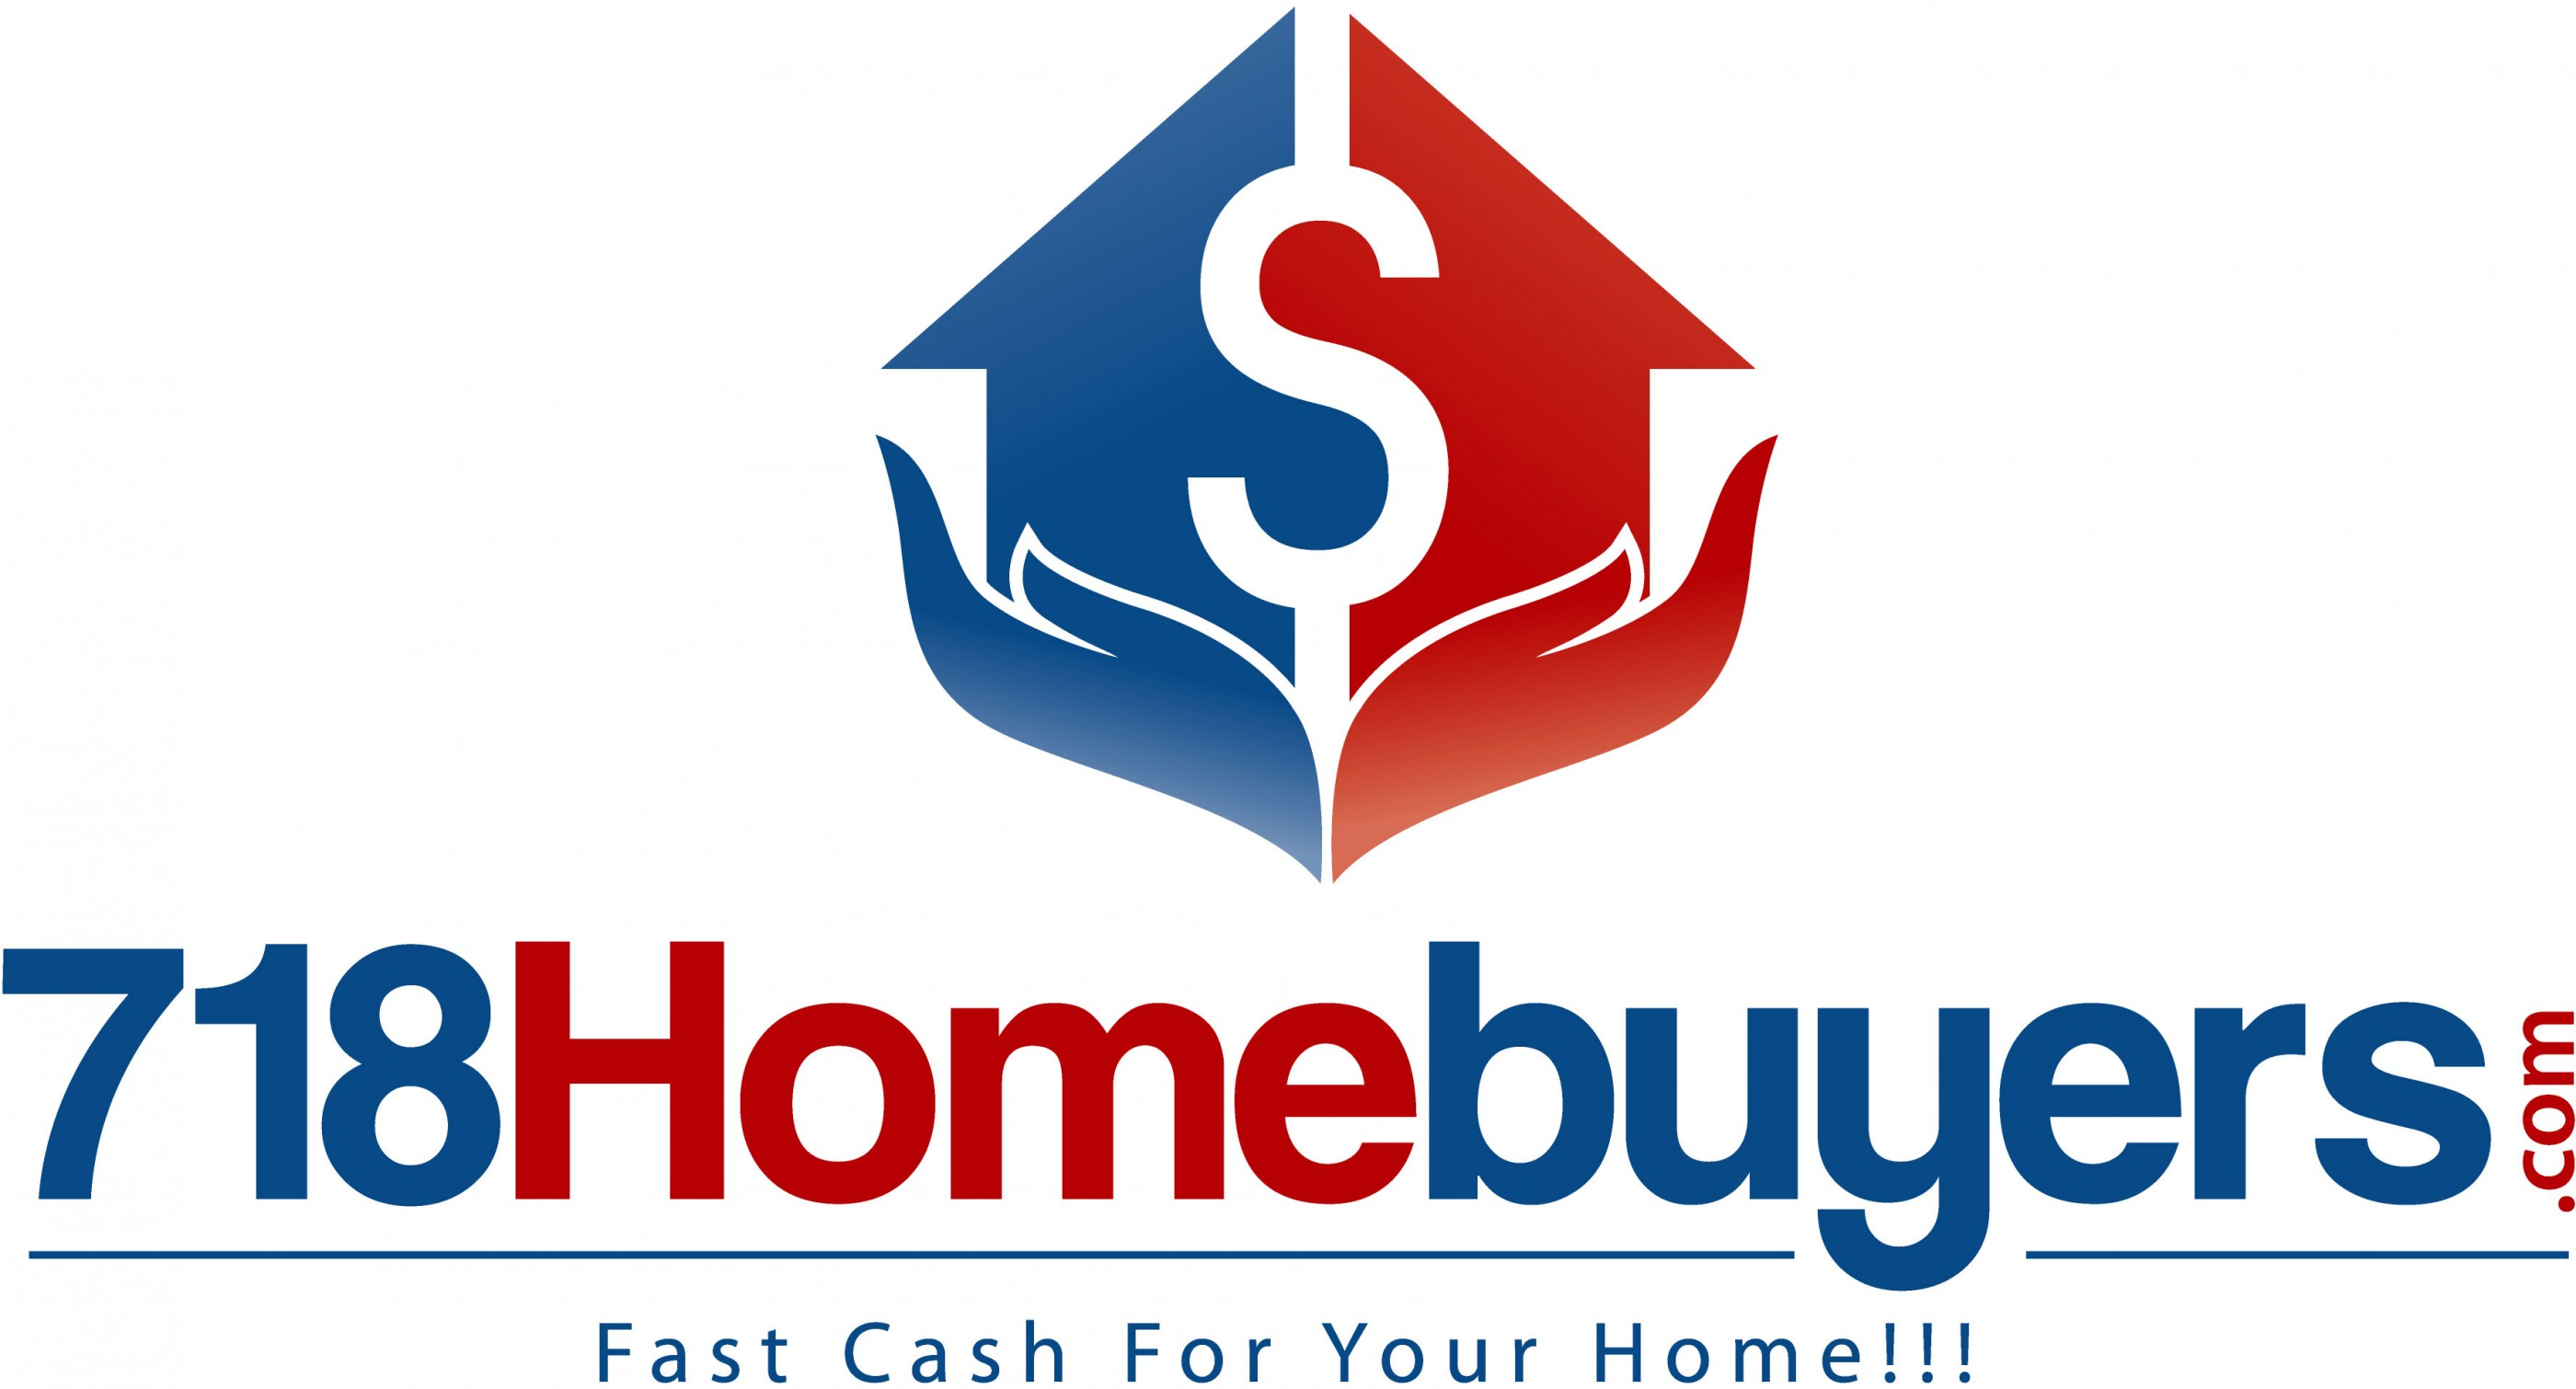 718Homebuyers.com